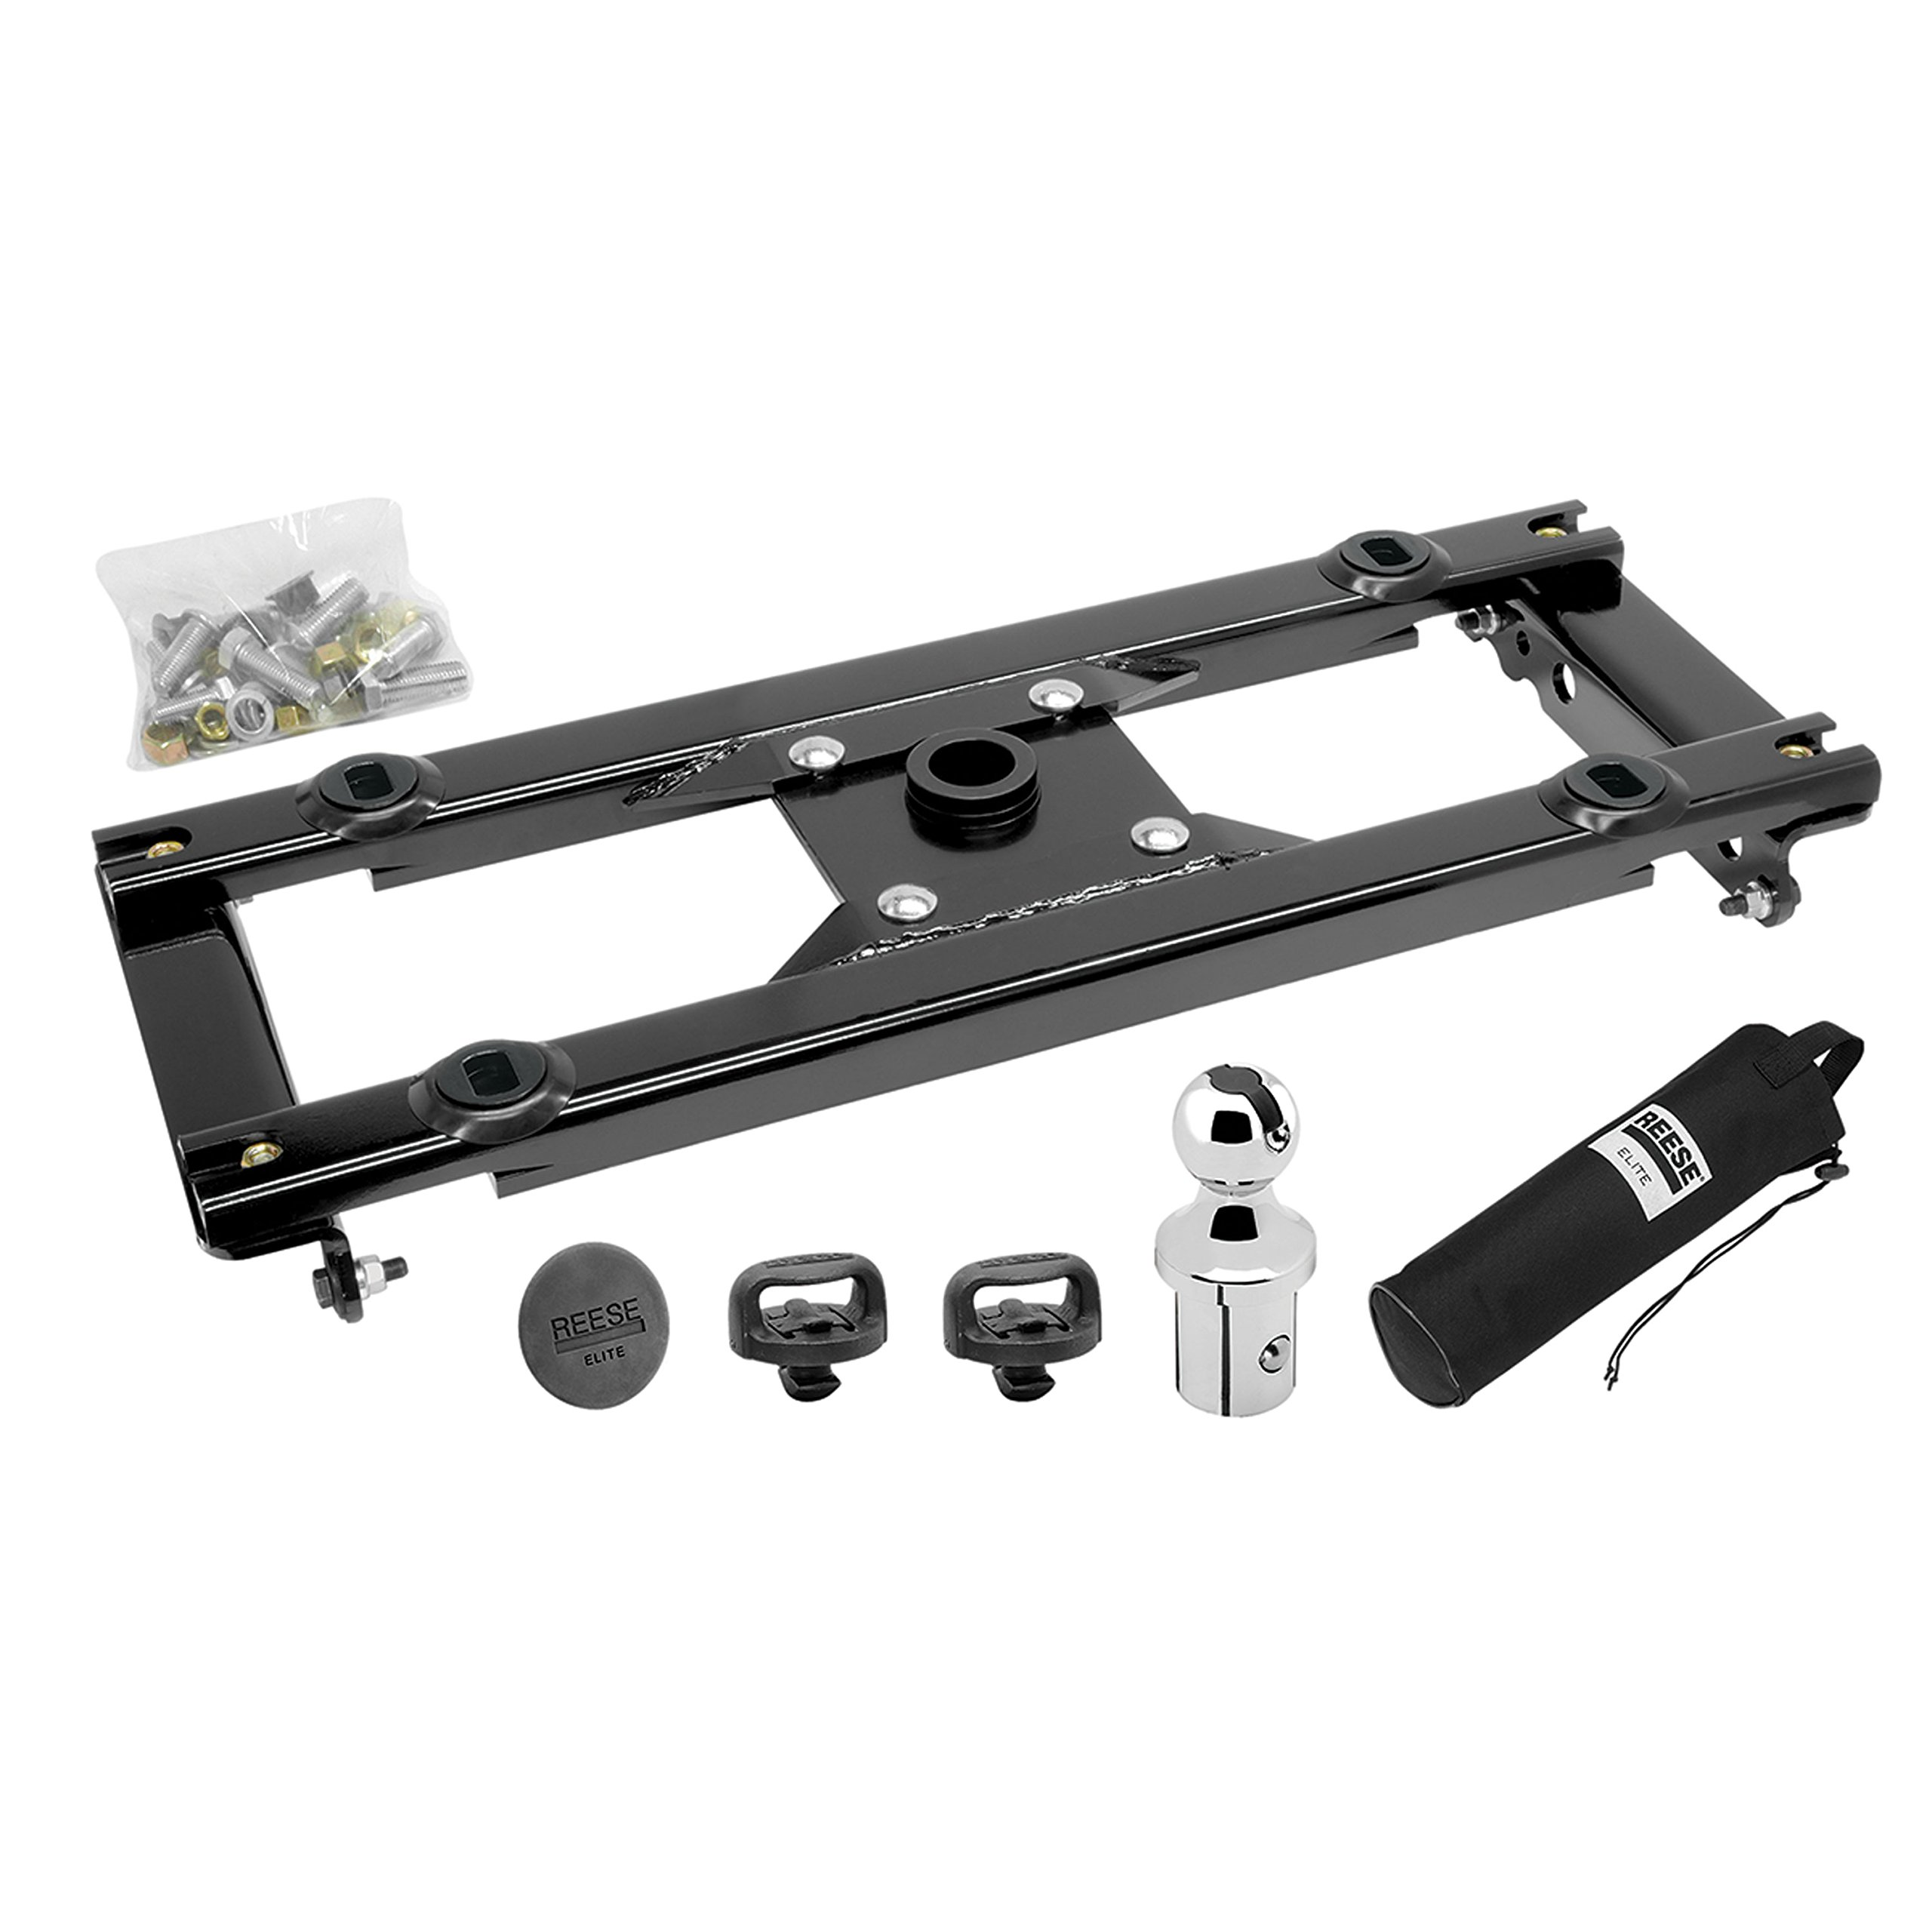 Reese 30138-26  Reese Elite Under-Bed 25K Gooseneck Hitch for Ford